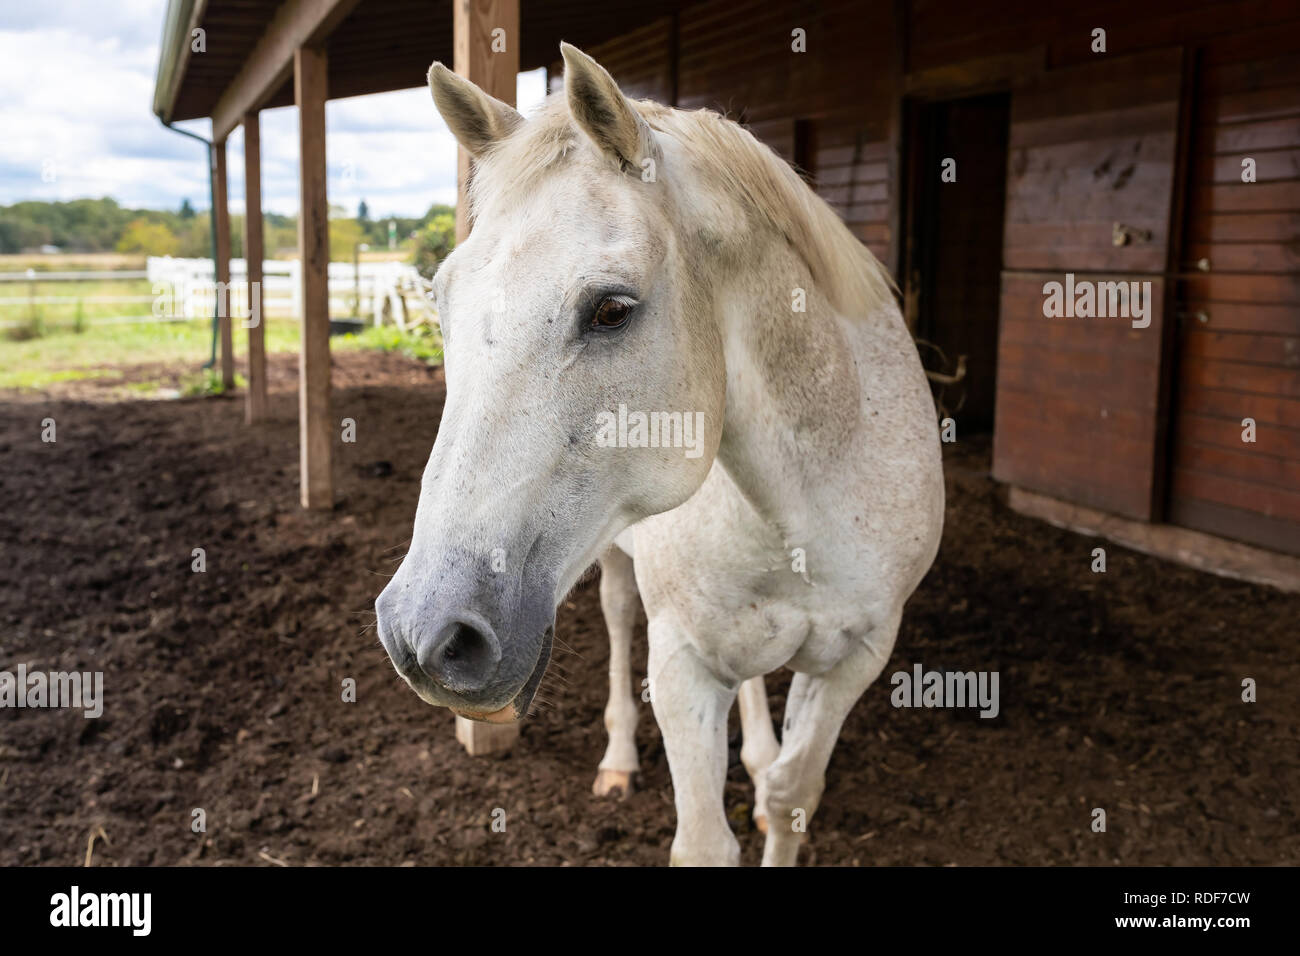 One curious white dapple quarter horse curiously approaches outside by the open barn. Sunny summer day in rural Pennsylvania countryside farmland. - Stock Image